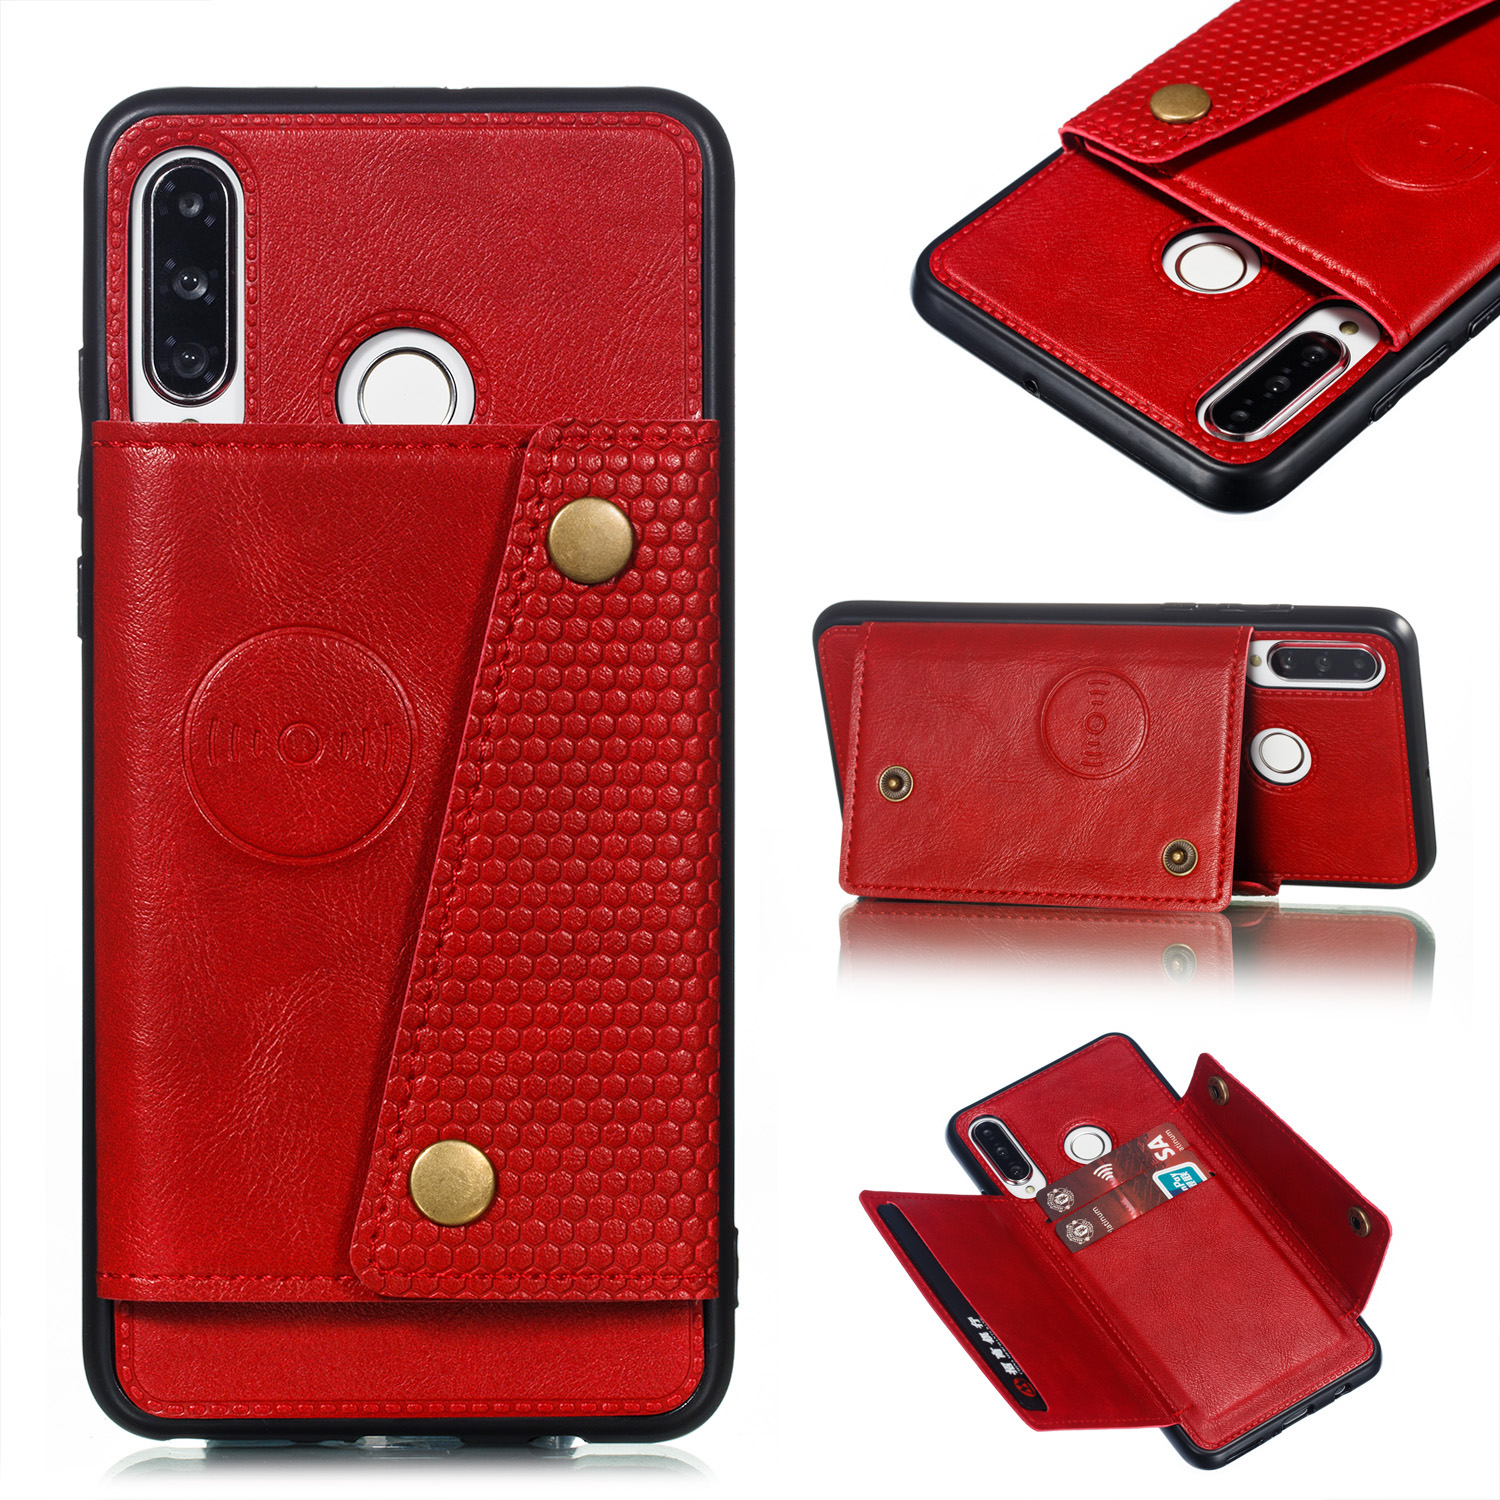 For Huawei P30 lite/nova 4E Double Buckle Non-slip Shockproof Cell Phone Case with Card Slot Bracket red